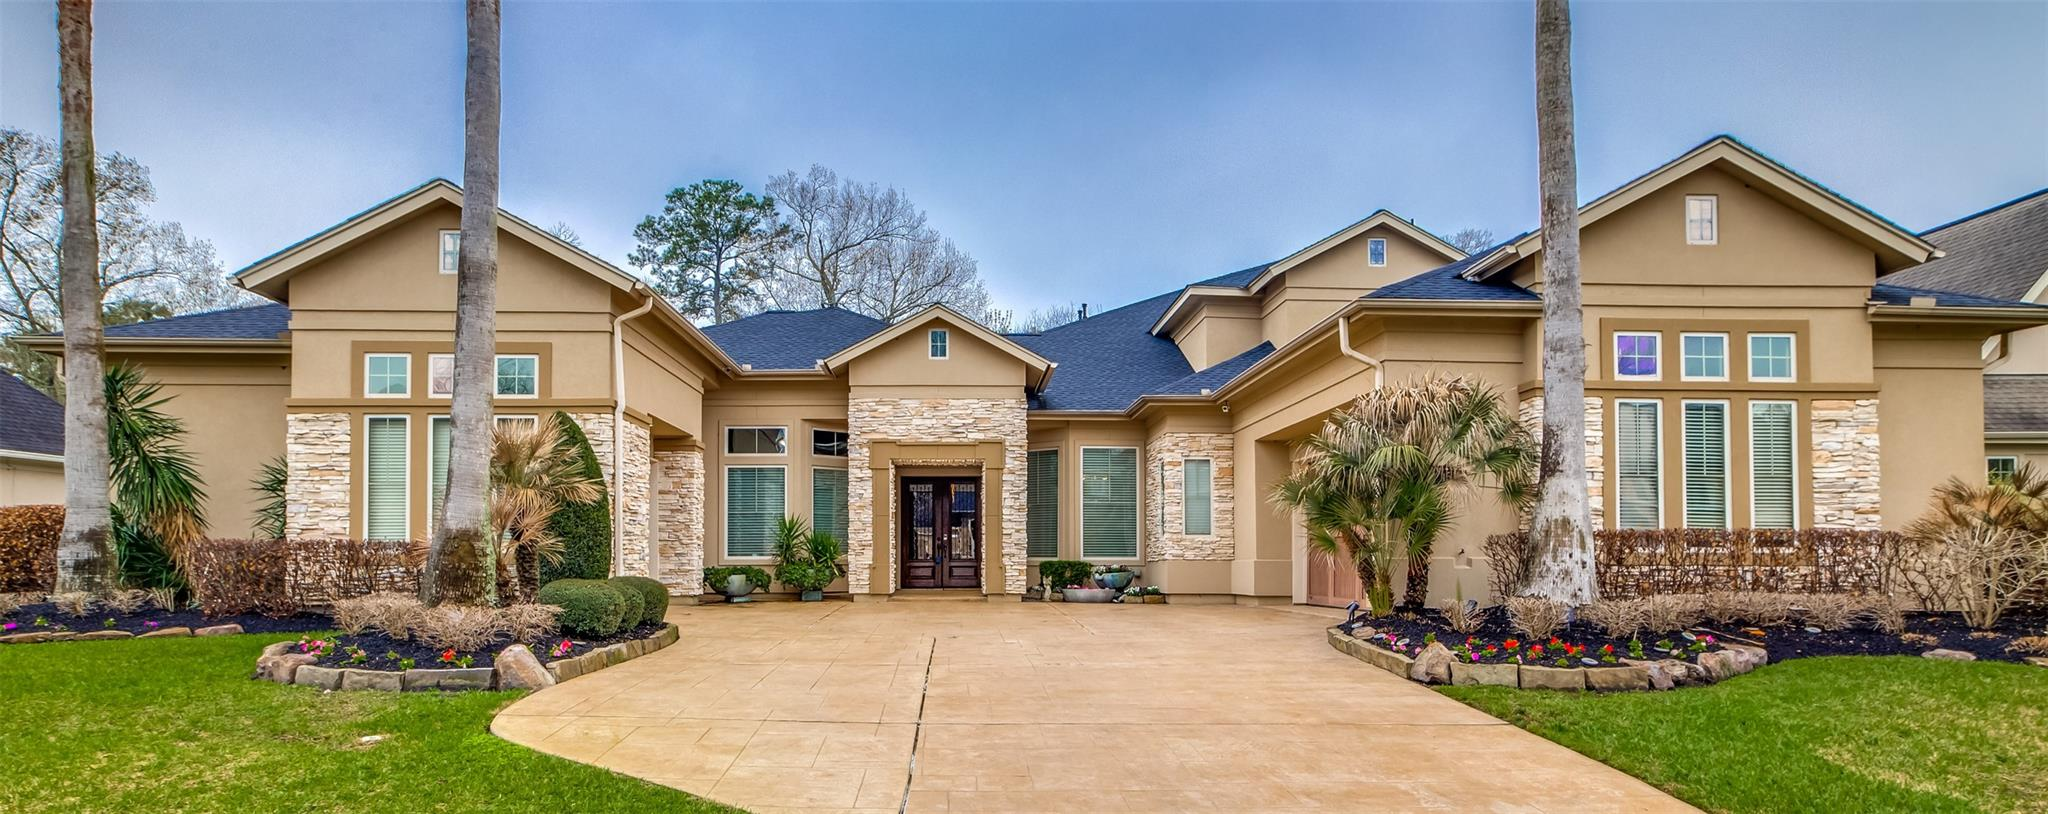 1511 Graystone Creek Court Property Photo - Kingwood, TX real estate listing